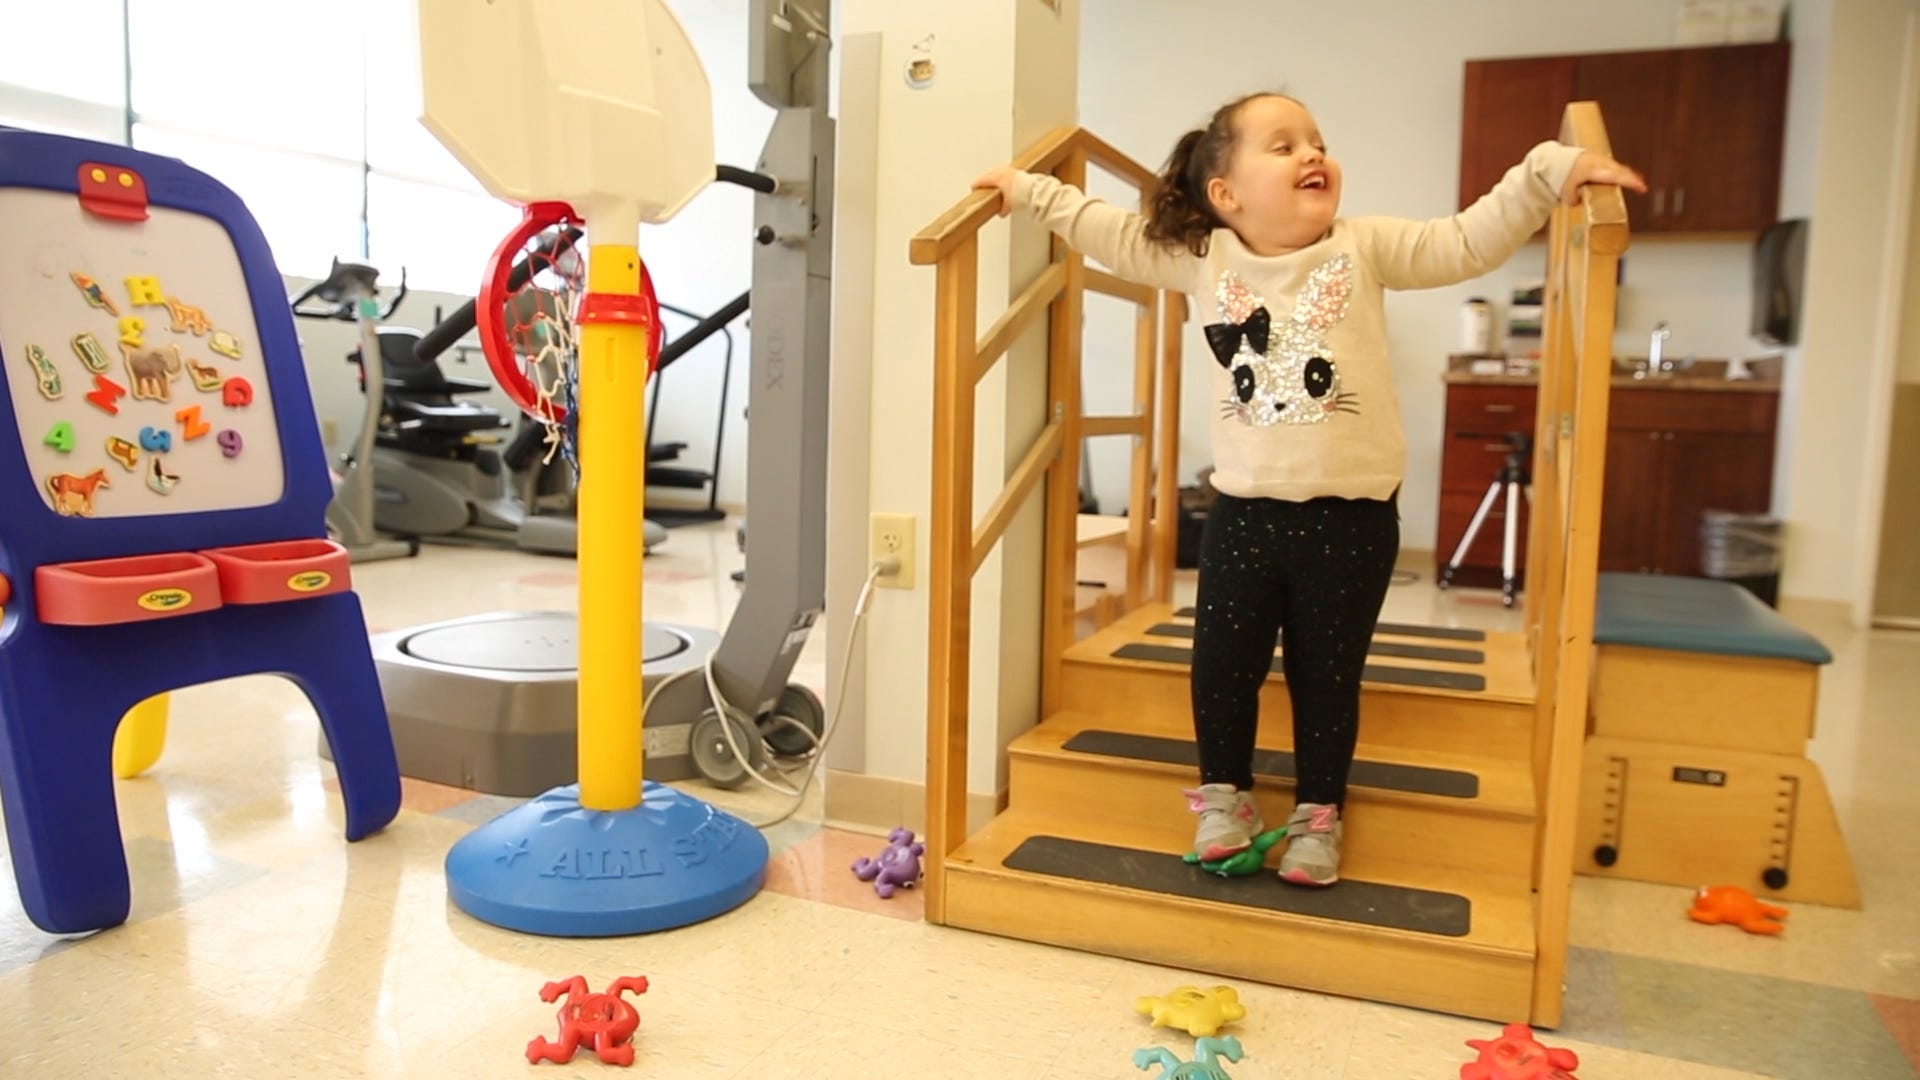 Little girl with spina bifida walks on her own